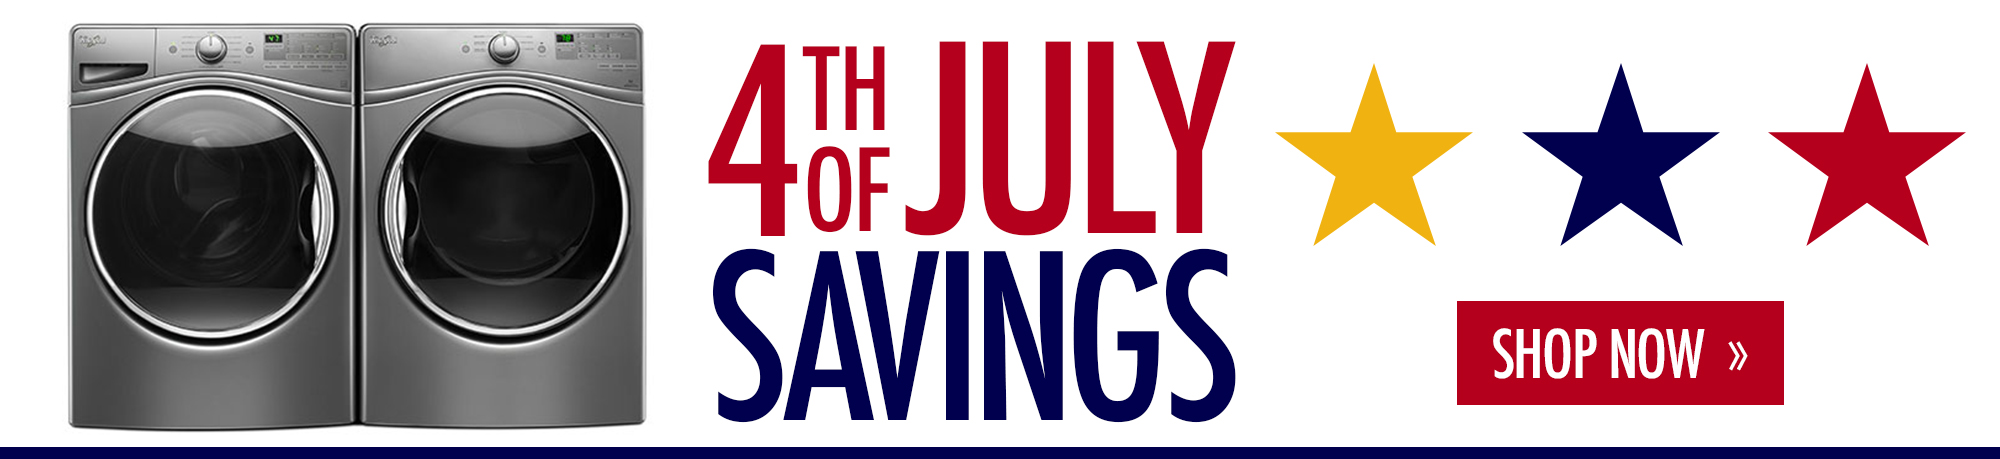 4th of July Savings